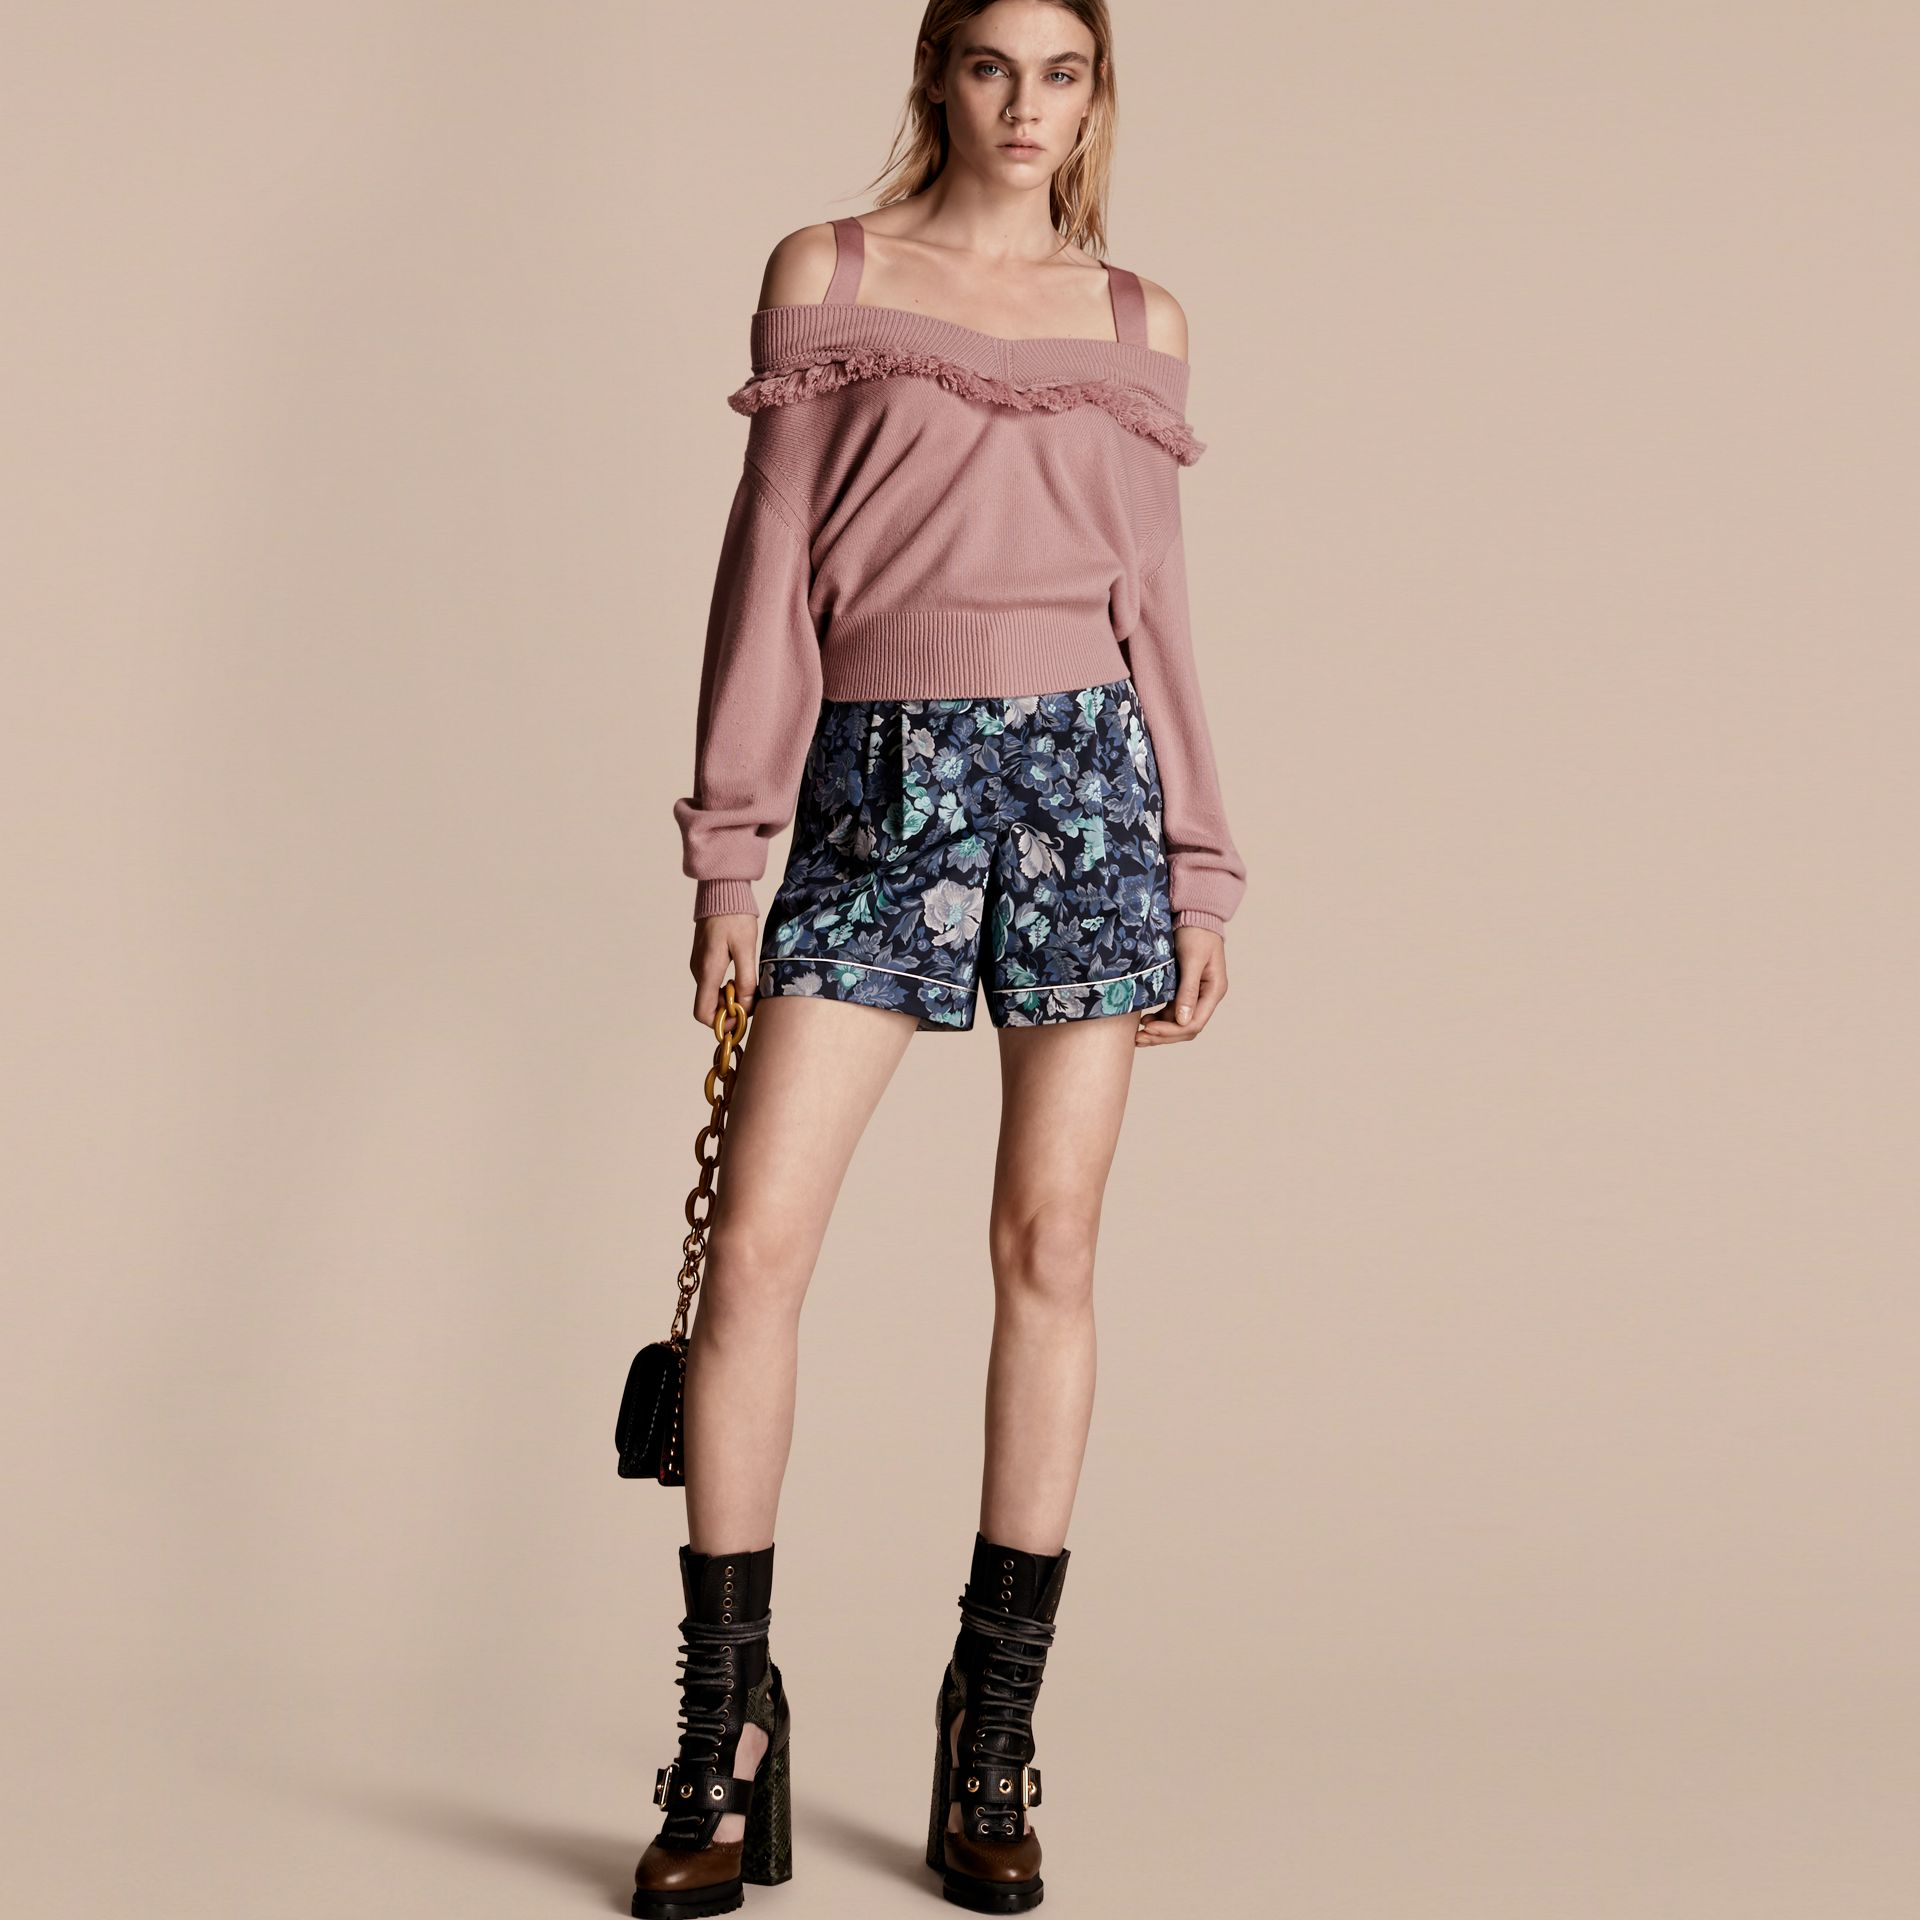 Blossom Cashmere Off-the-shoulder Sweater with Fringing Blossom - gallery image 1